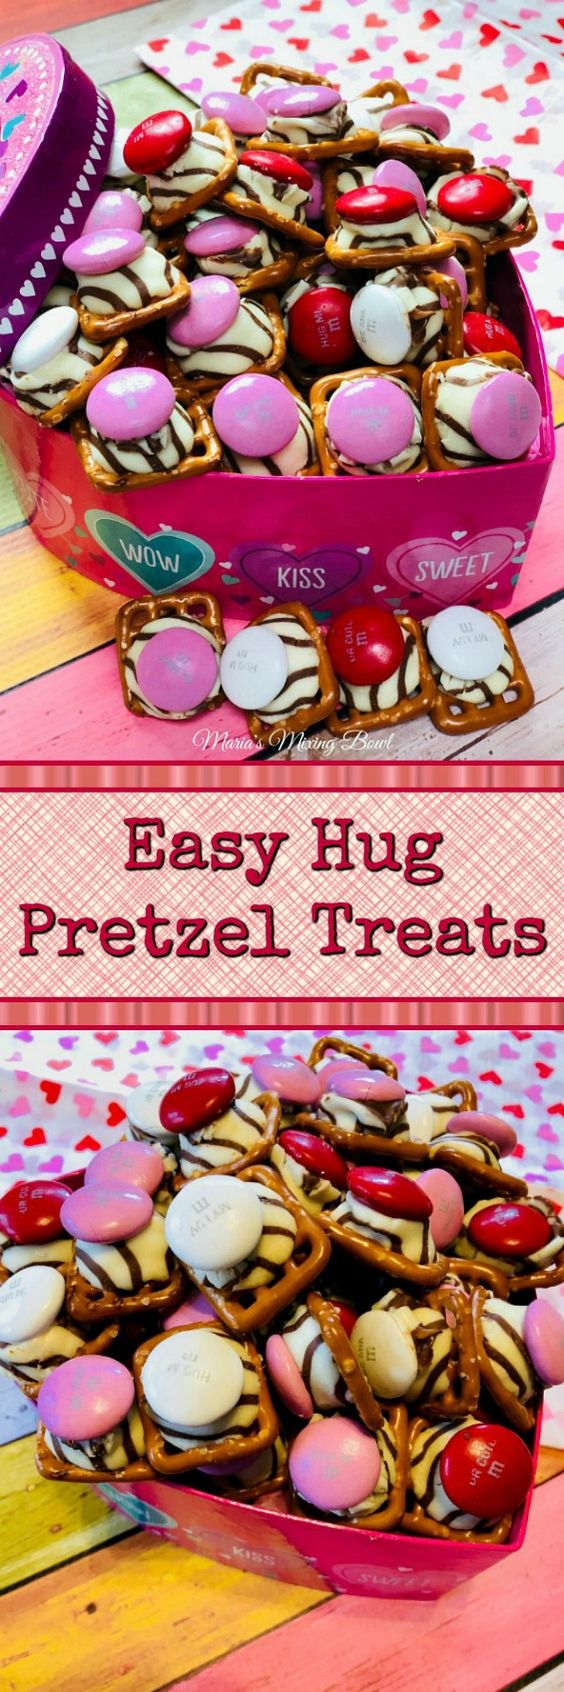 Easy Hug Pretzel Treats - These are one of  our favorite treats.  They are pretty , are quick and easy, and are the perfect salty and sweet combo. We make them for every possible holiday!